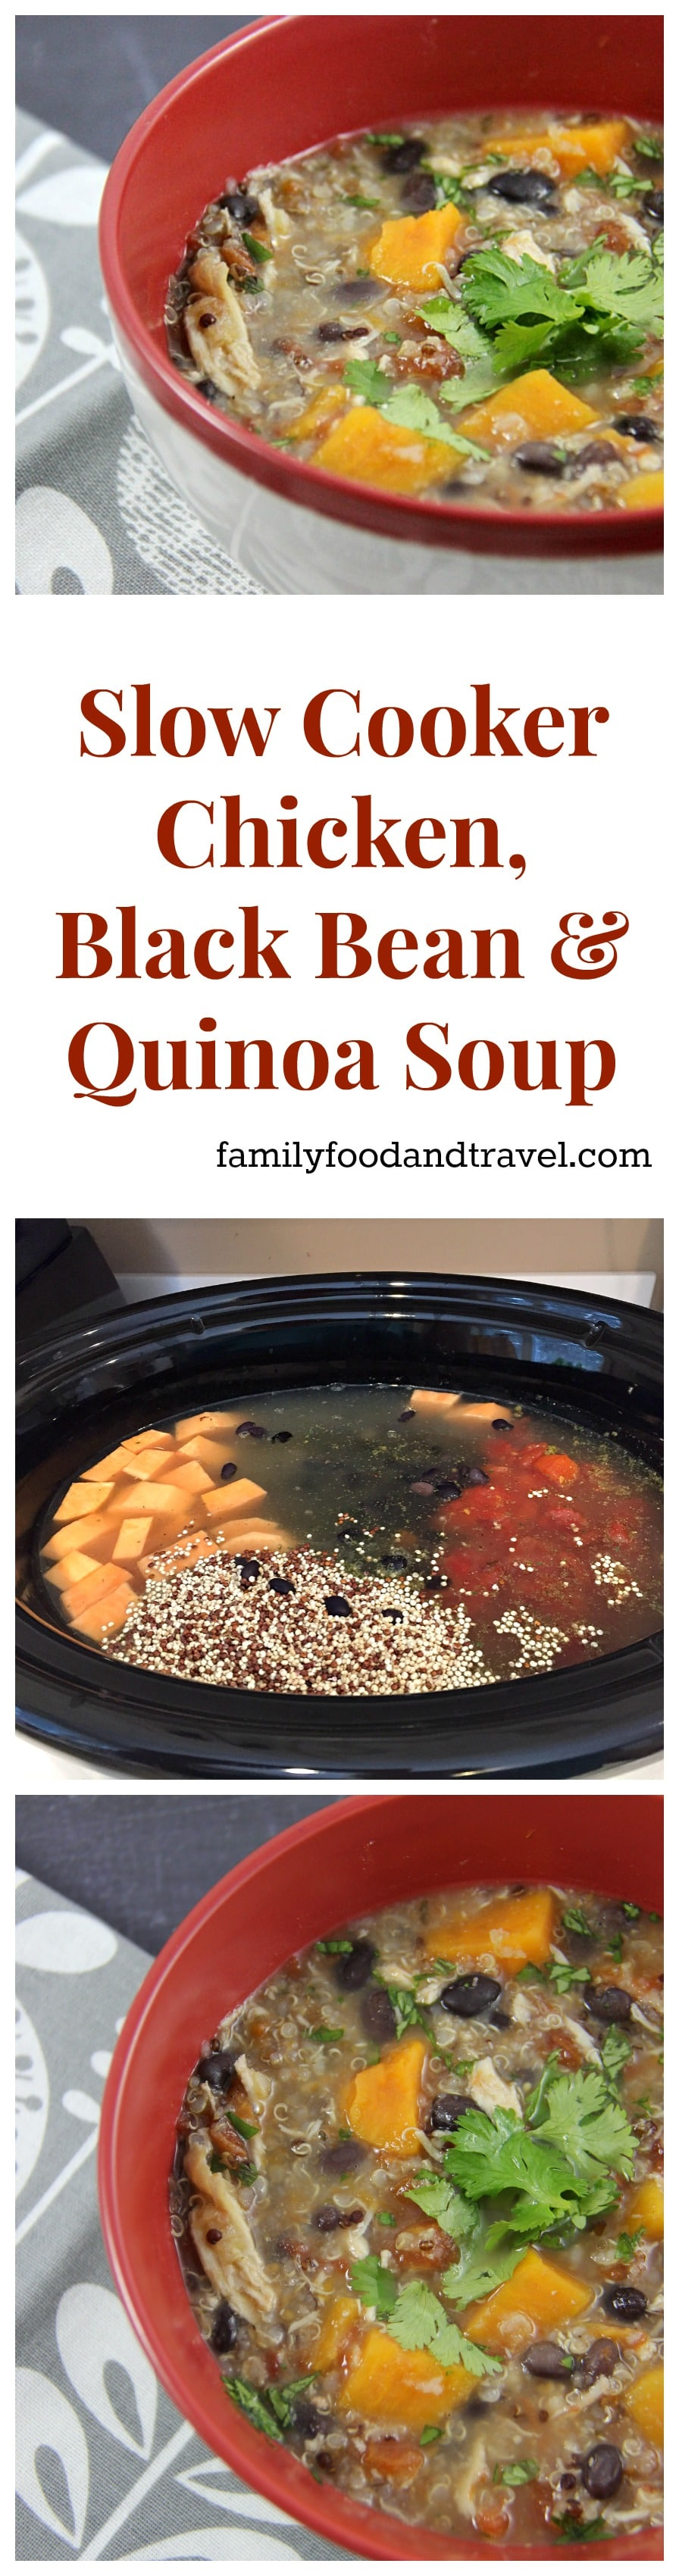 Slow Cooker Chicken Black Bean and Quinoa Soup